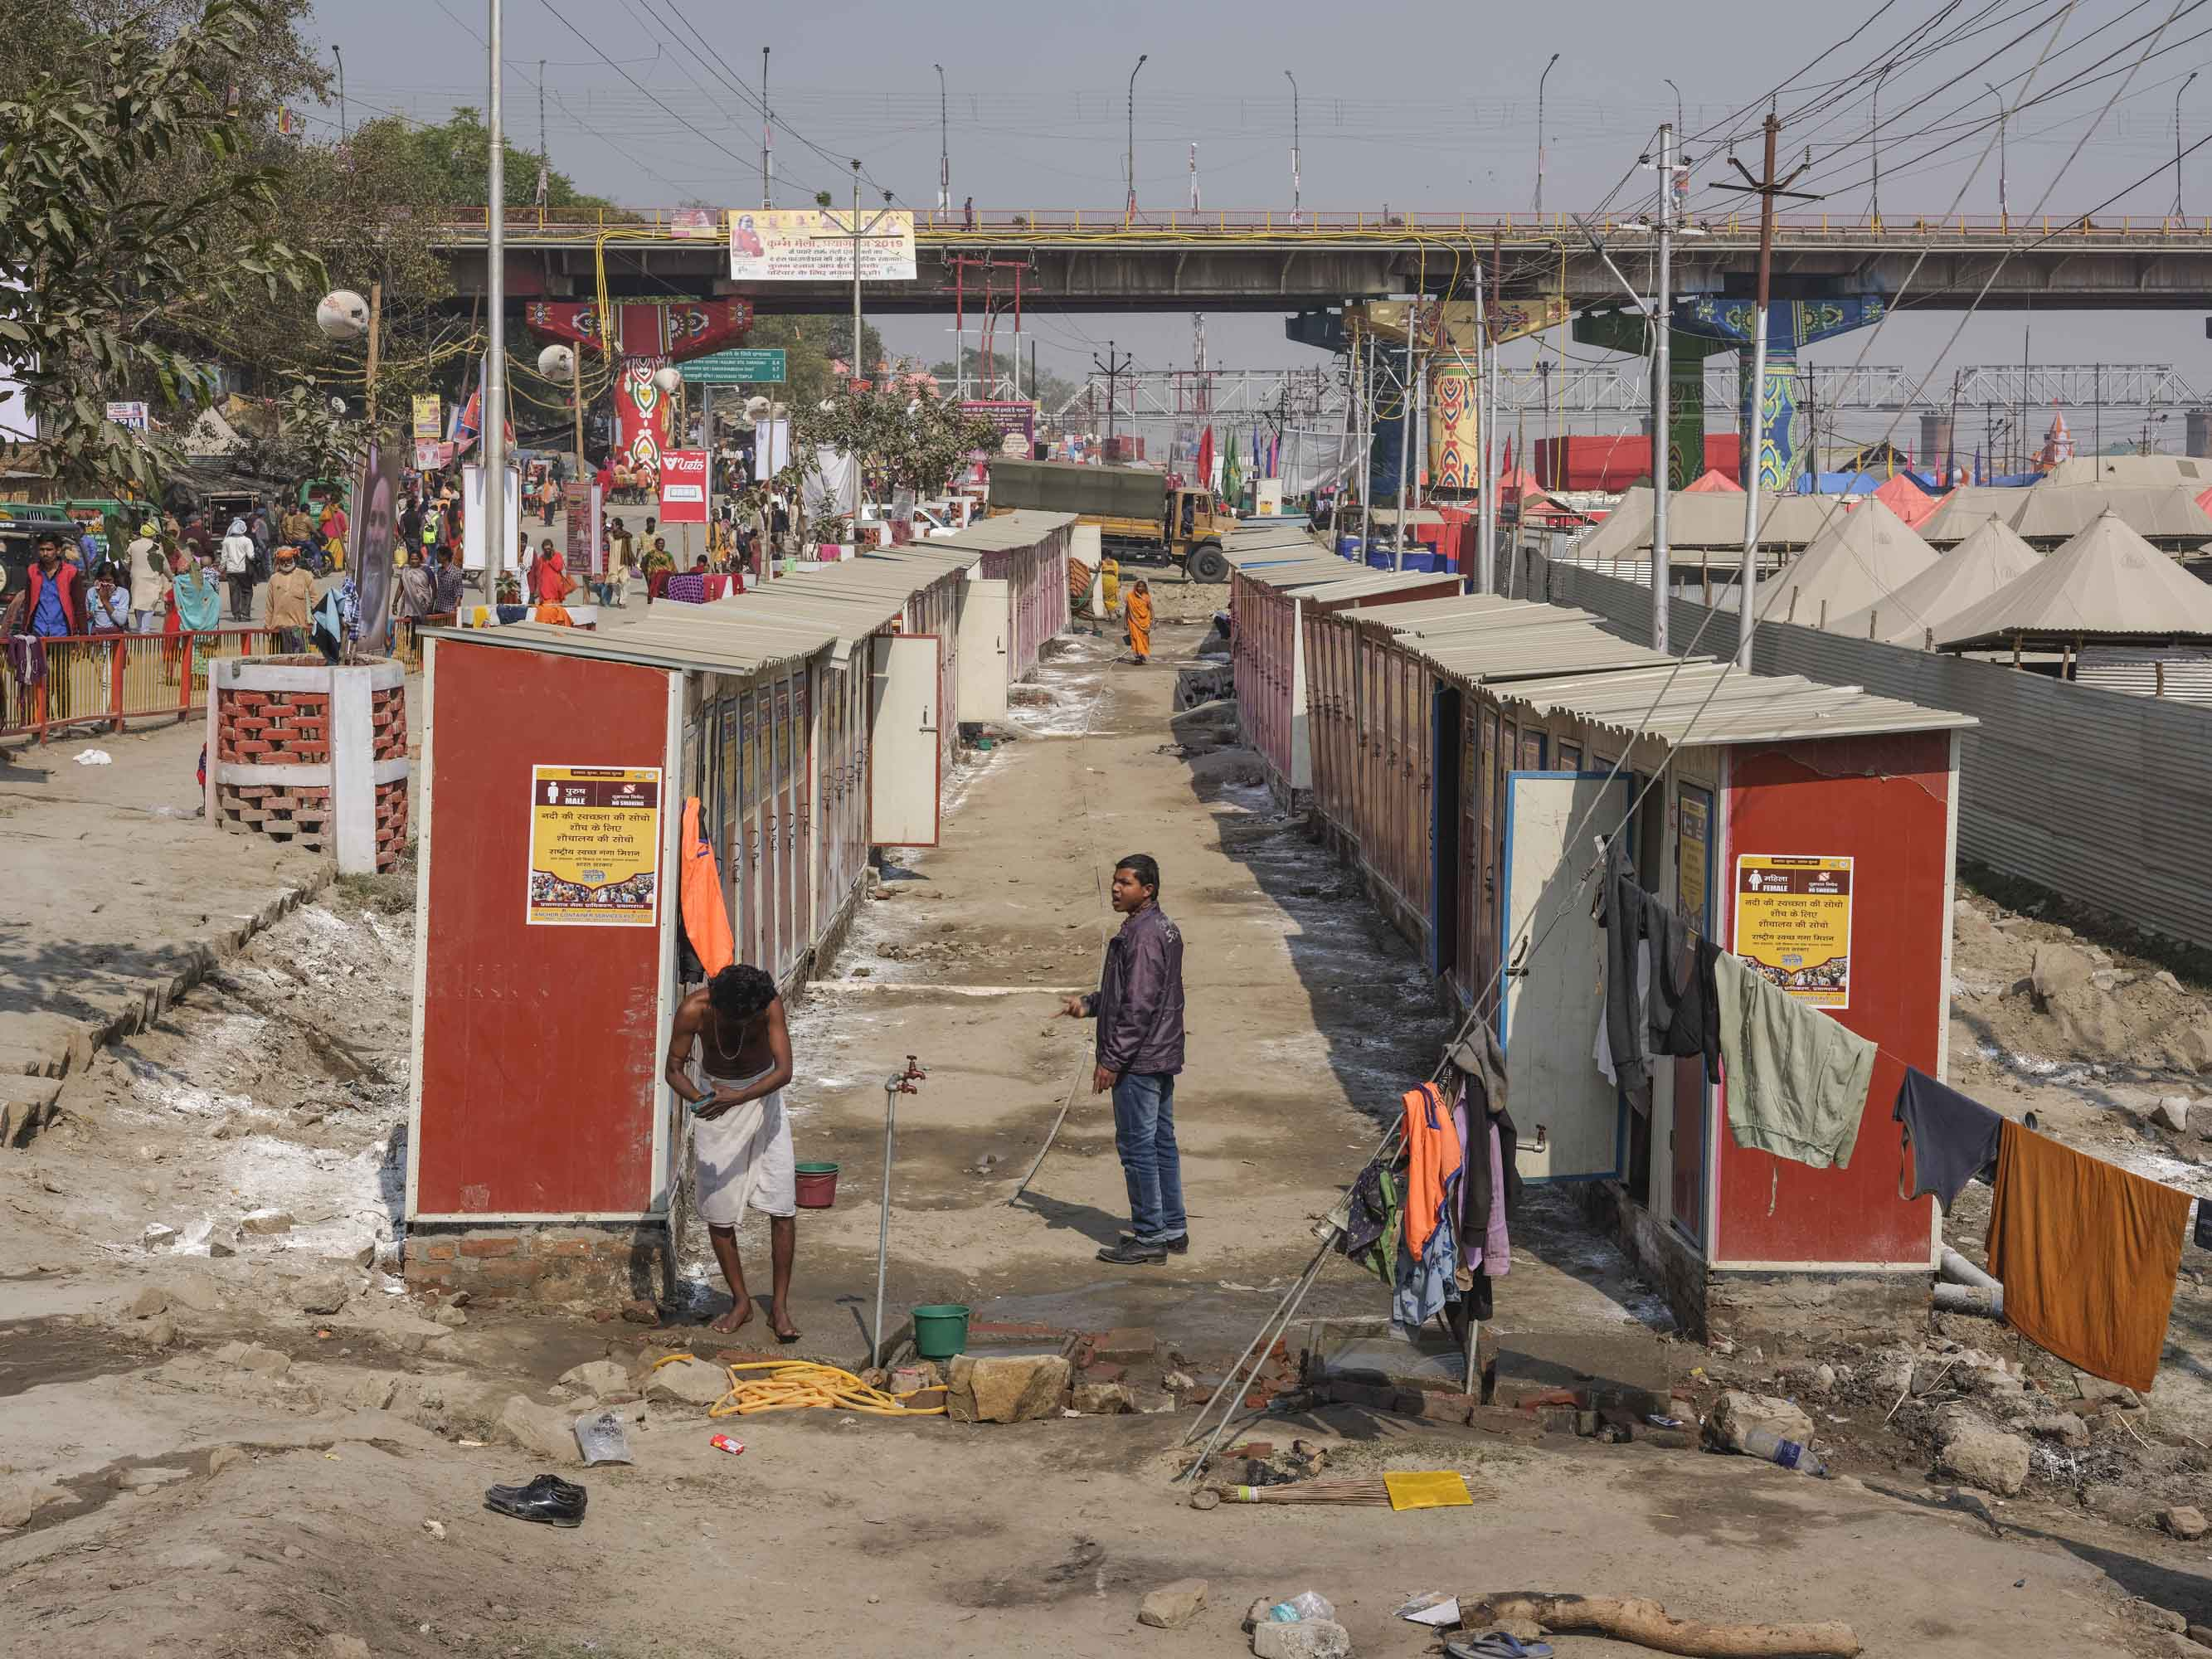 a lot of toilet pilgrims Kumbh mela 2019 India Allahabad Prayagraj Ardh hindu religious Festival event rivers photographer jose jeuland photography